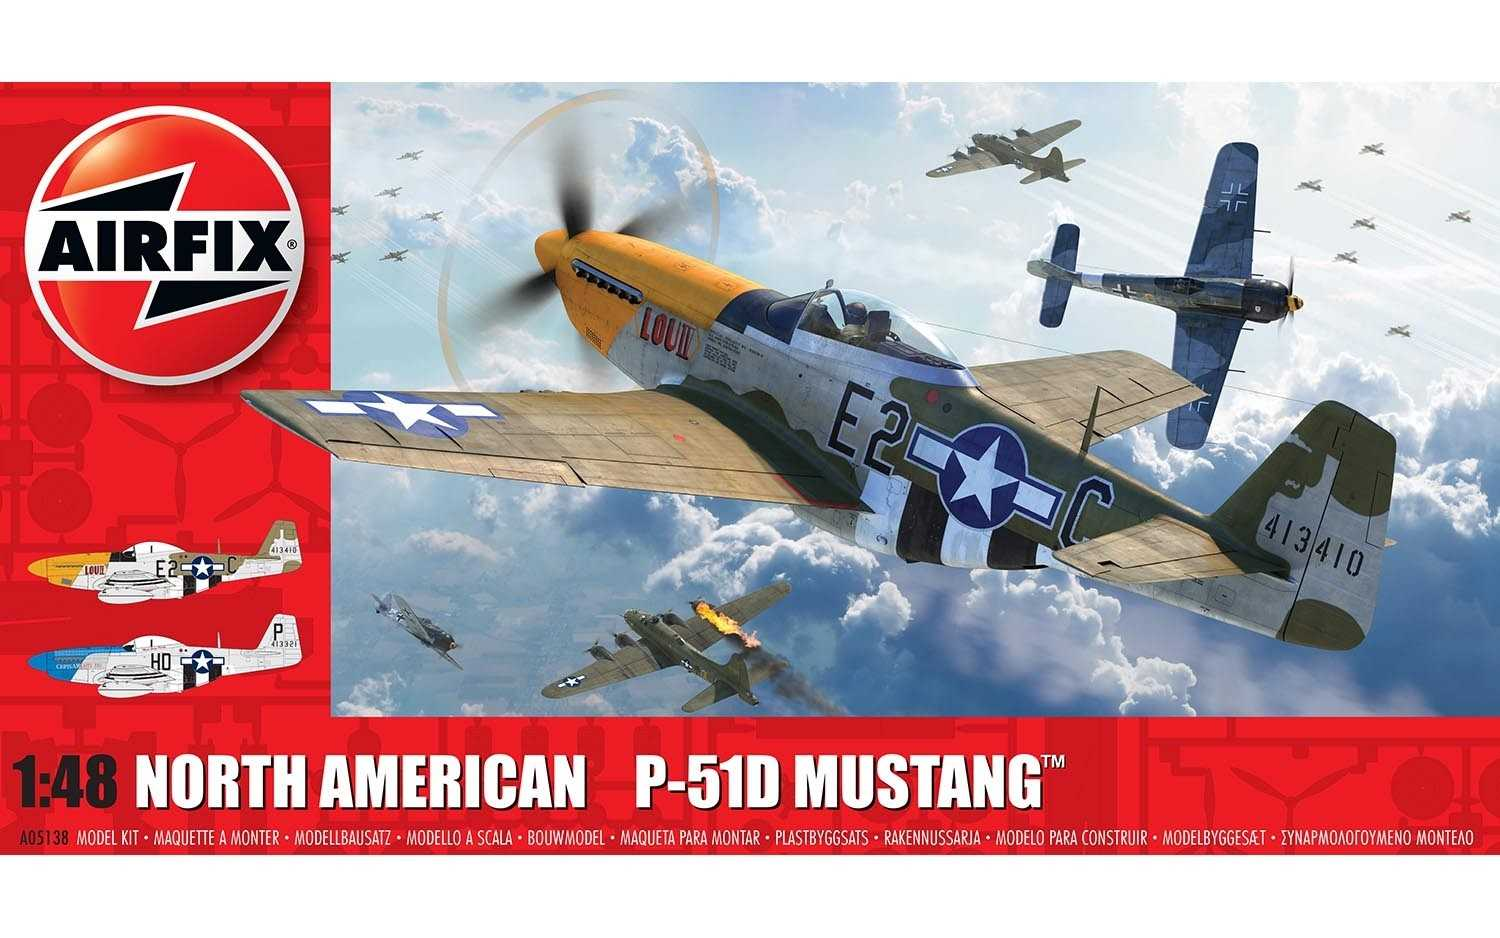 1:48 North American P-51D Mustang (Filletless Tails)